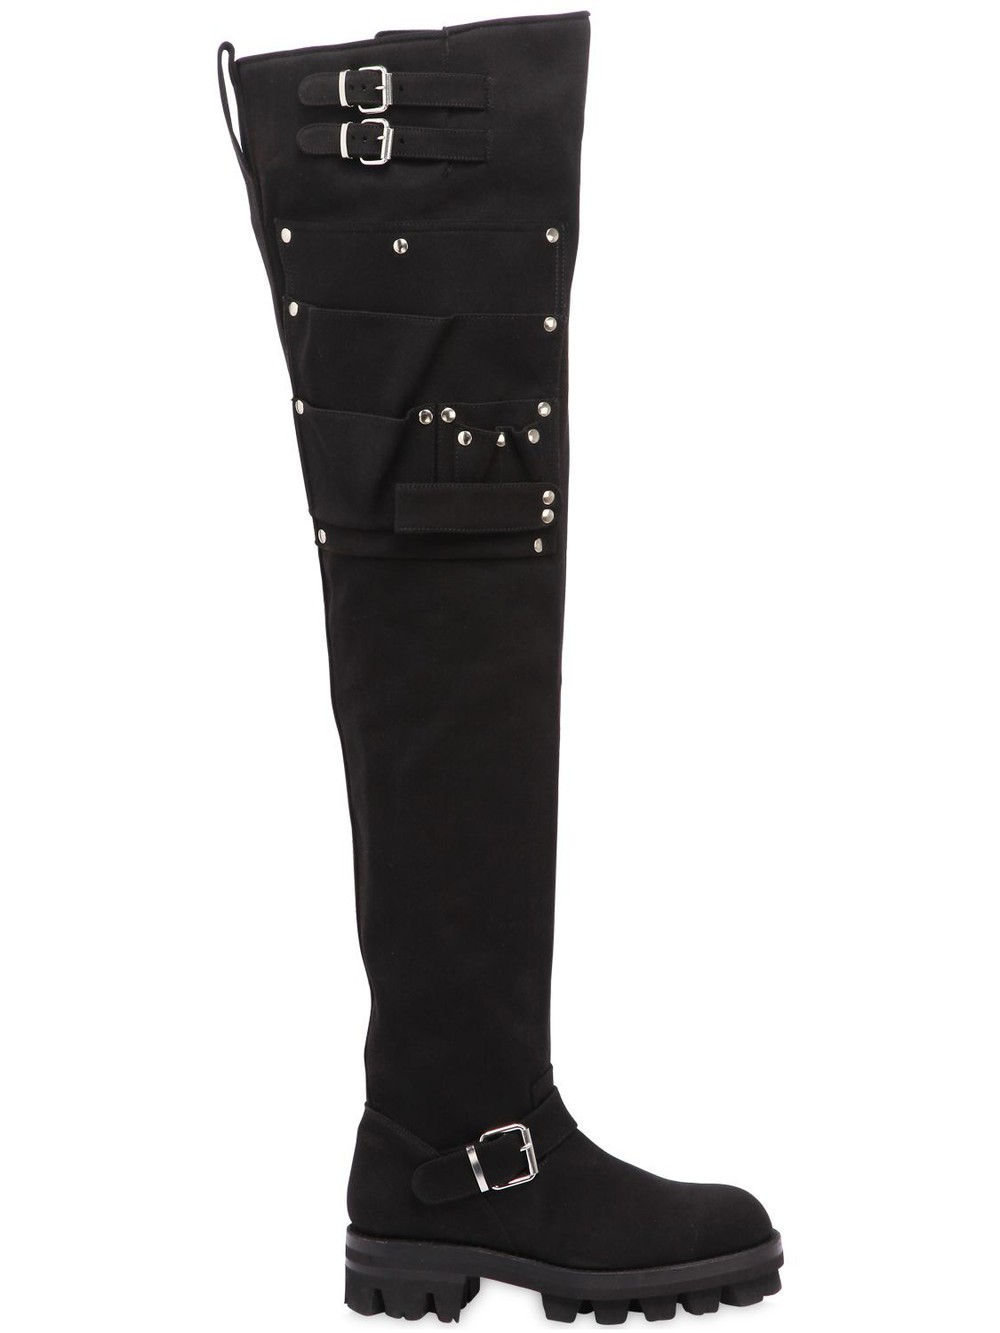 ALYX 40mm Utility Over The Knee Canvas Boots in black